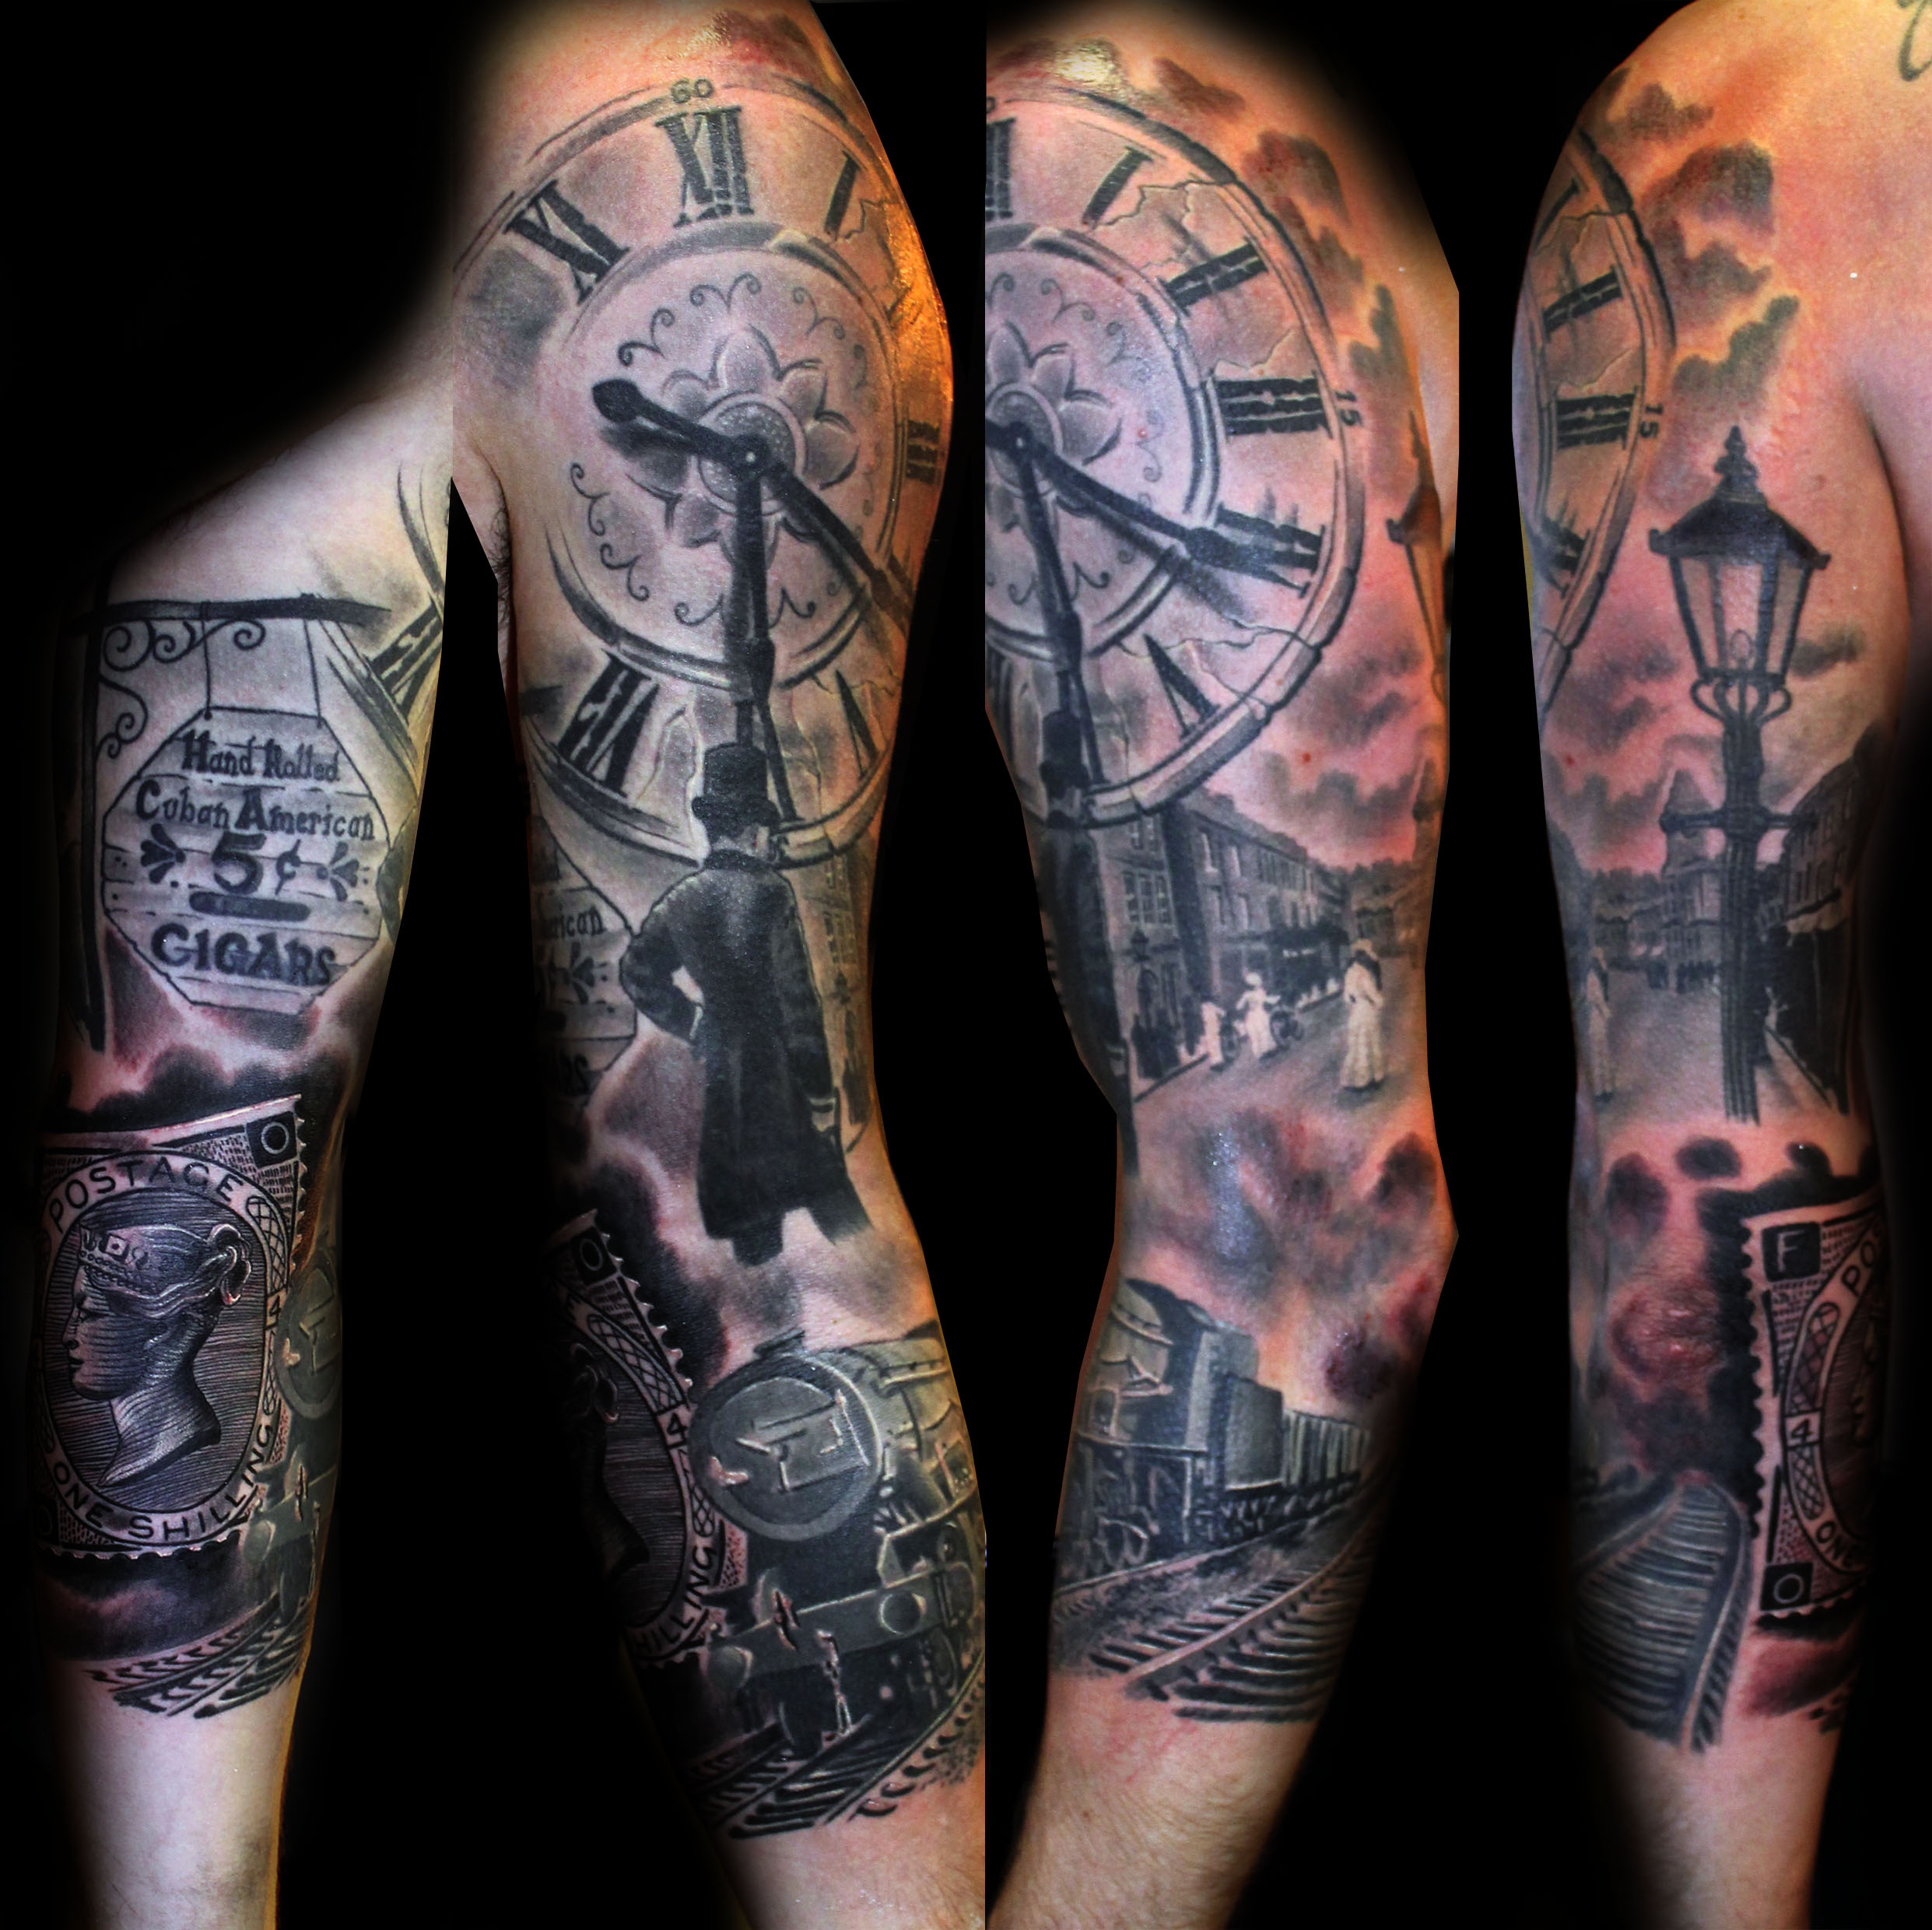 28 Olde Town Tattoo Tiger By Town Ink Bubba Irwin Dj Ideas And Designs Original 1024 x 768